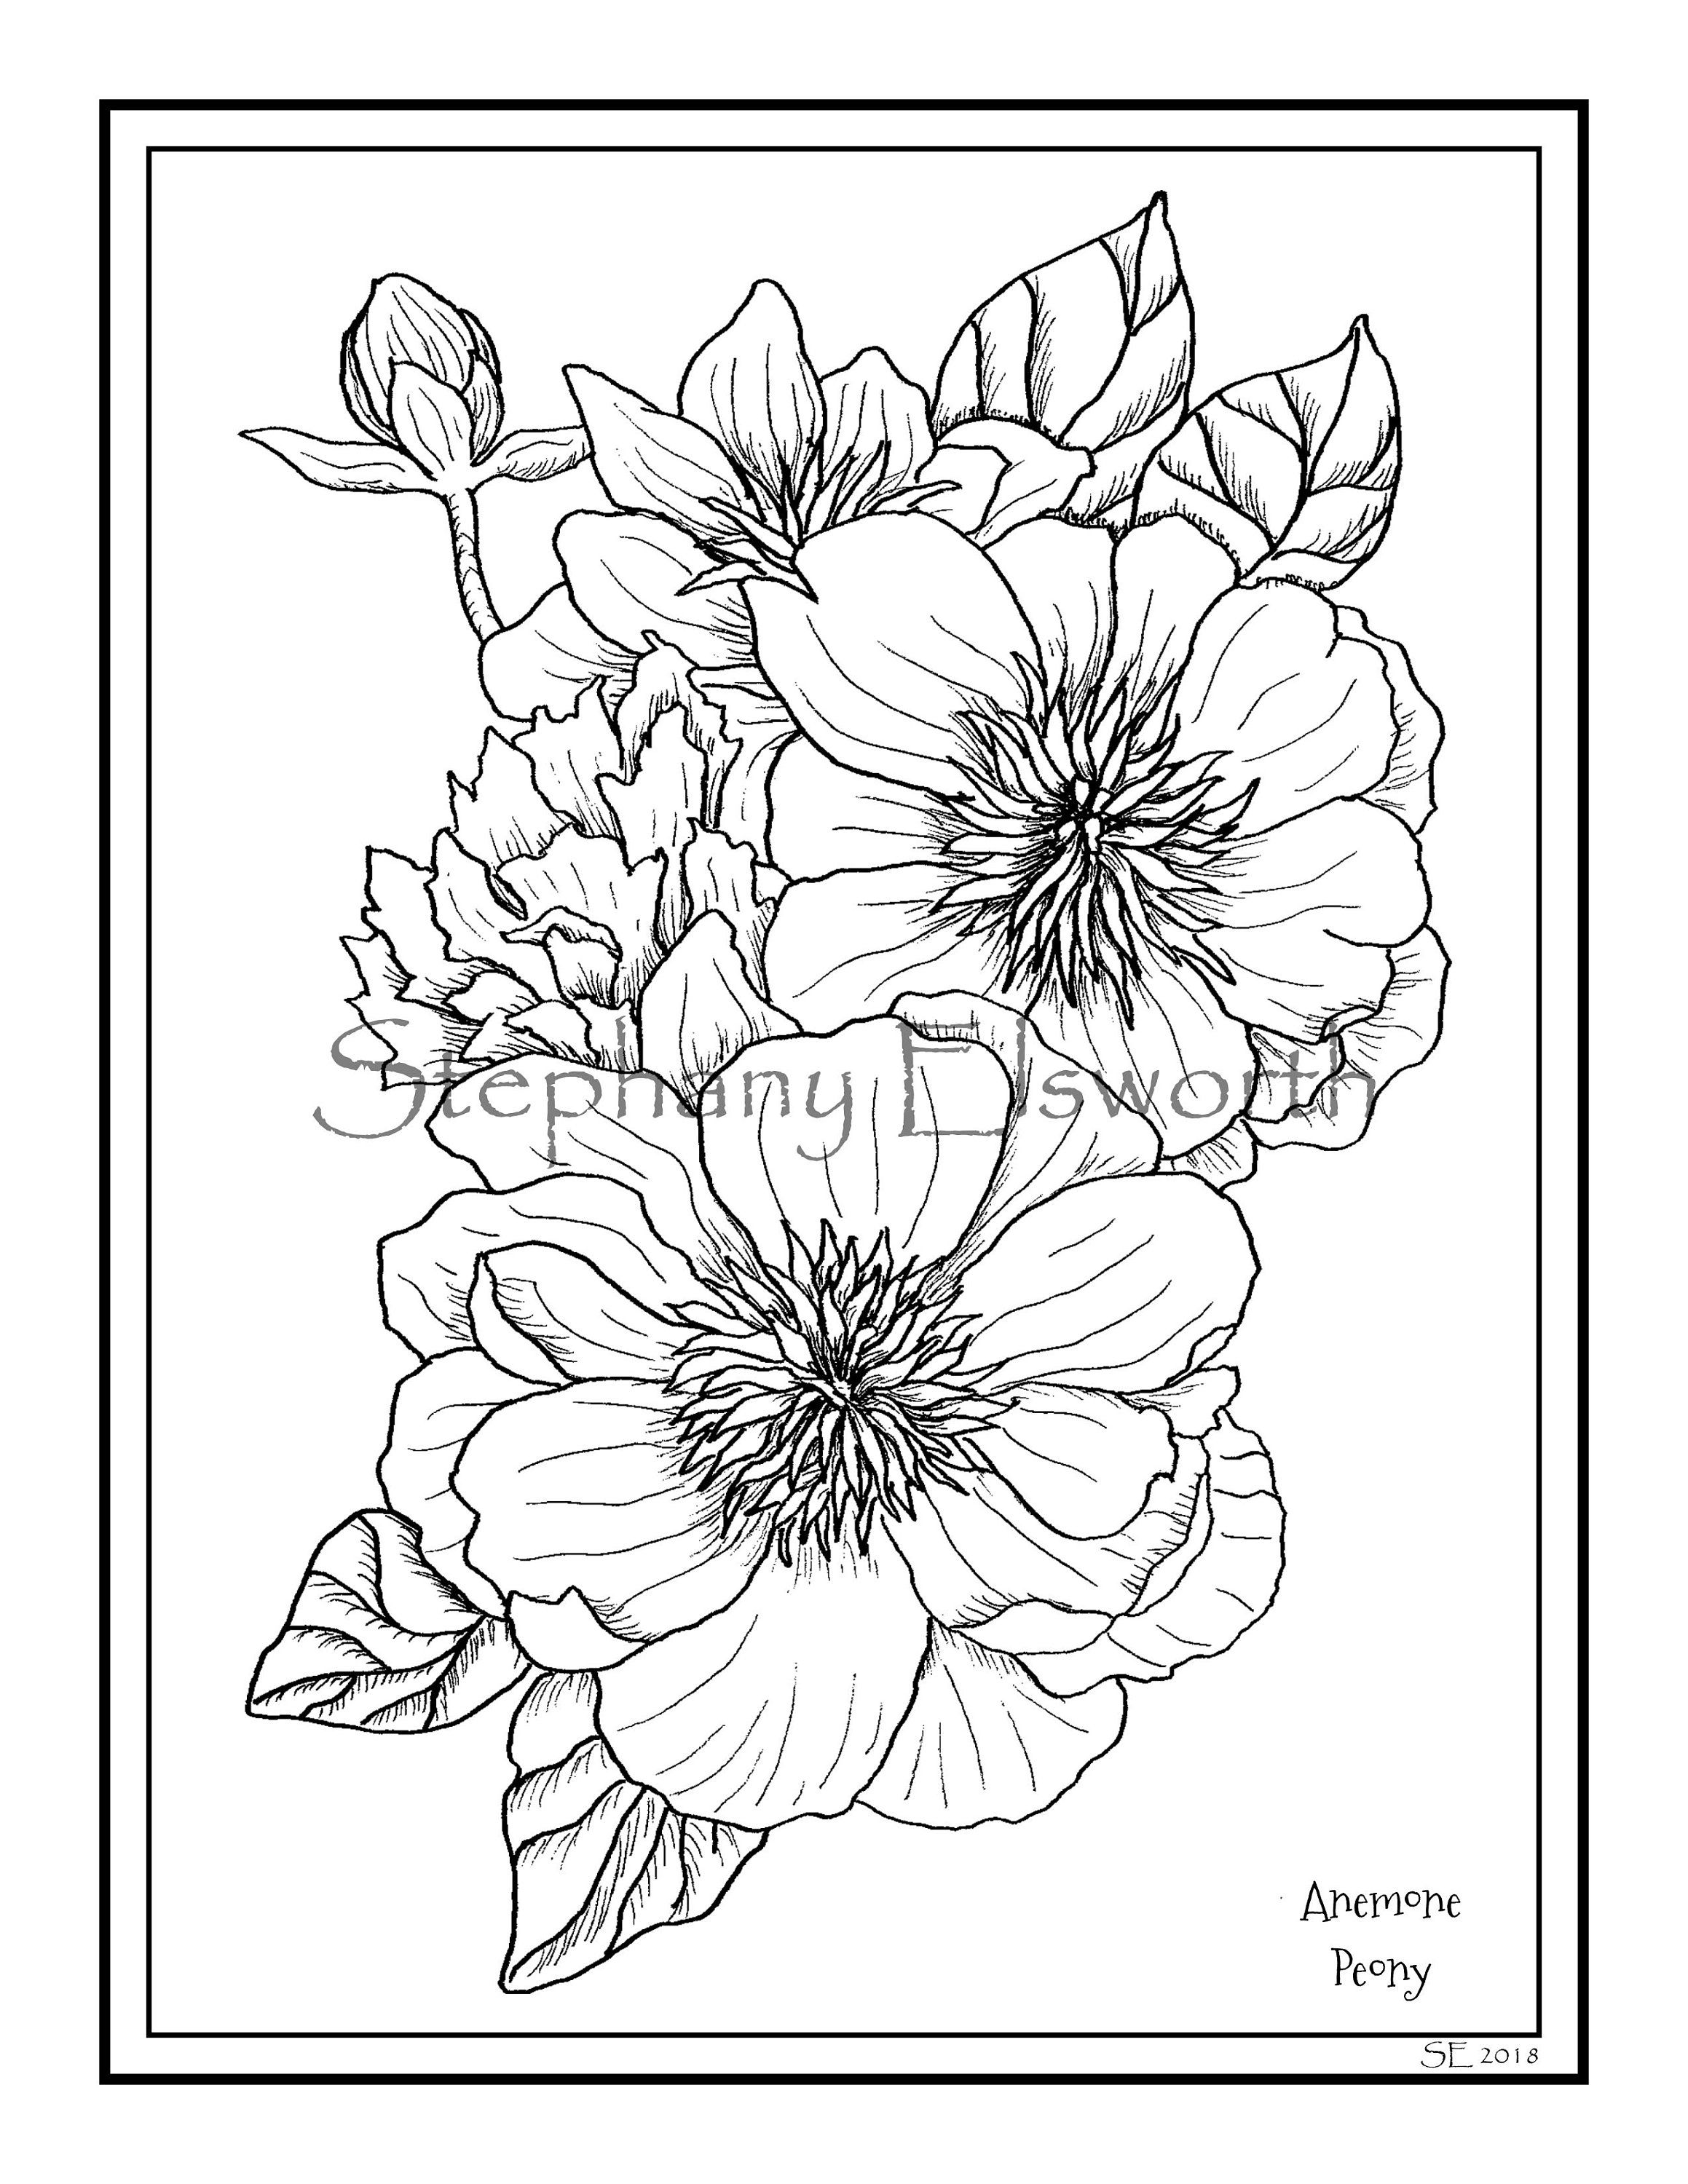 Anemone Peony 8 1 2 X 11 Pdf Printable Instant Download Coloring Page With Images Kolorowanki